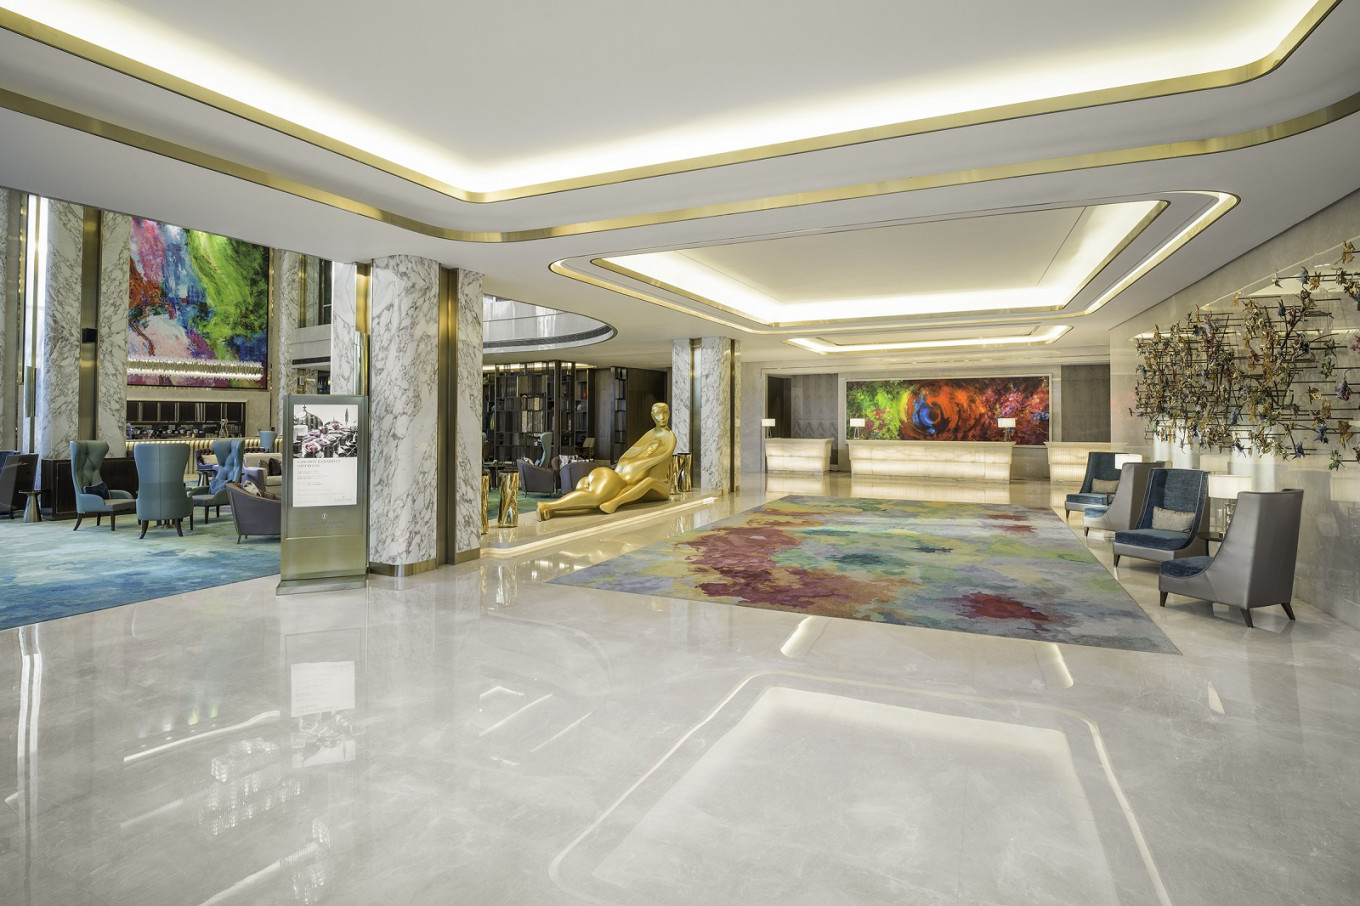 New place to meet, stay in South Jakarta: InterContinental Jakarta Pondok Indah